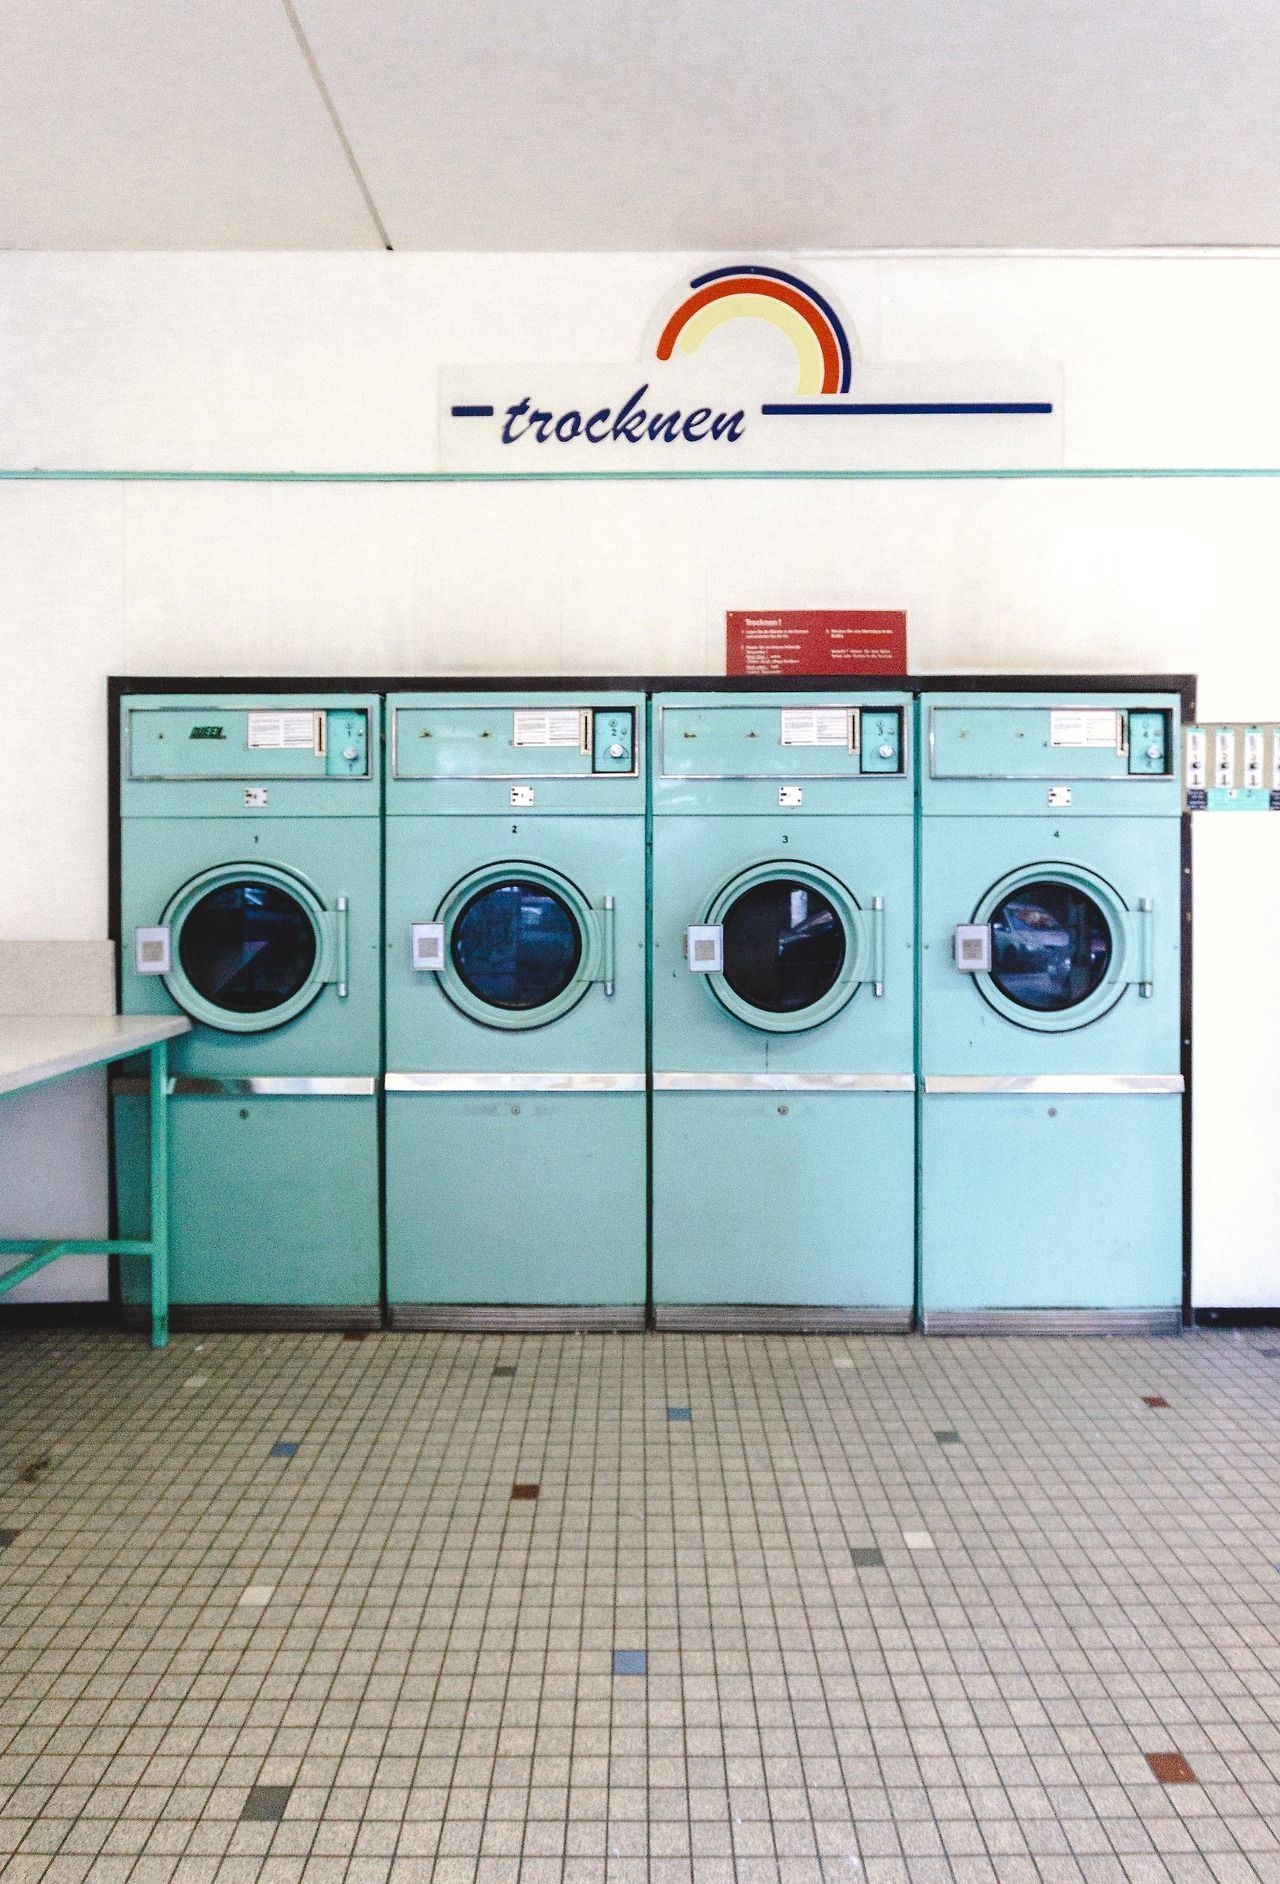 TrocknenA very retro laundromat (Wascherei) near our